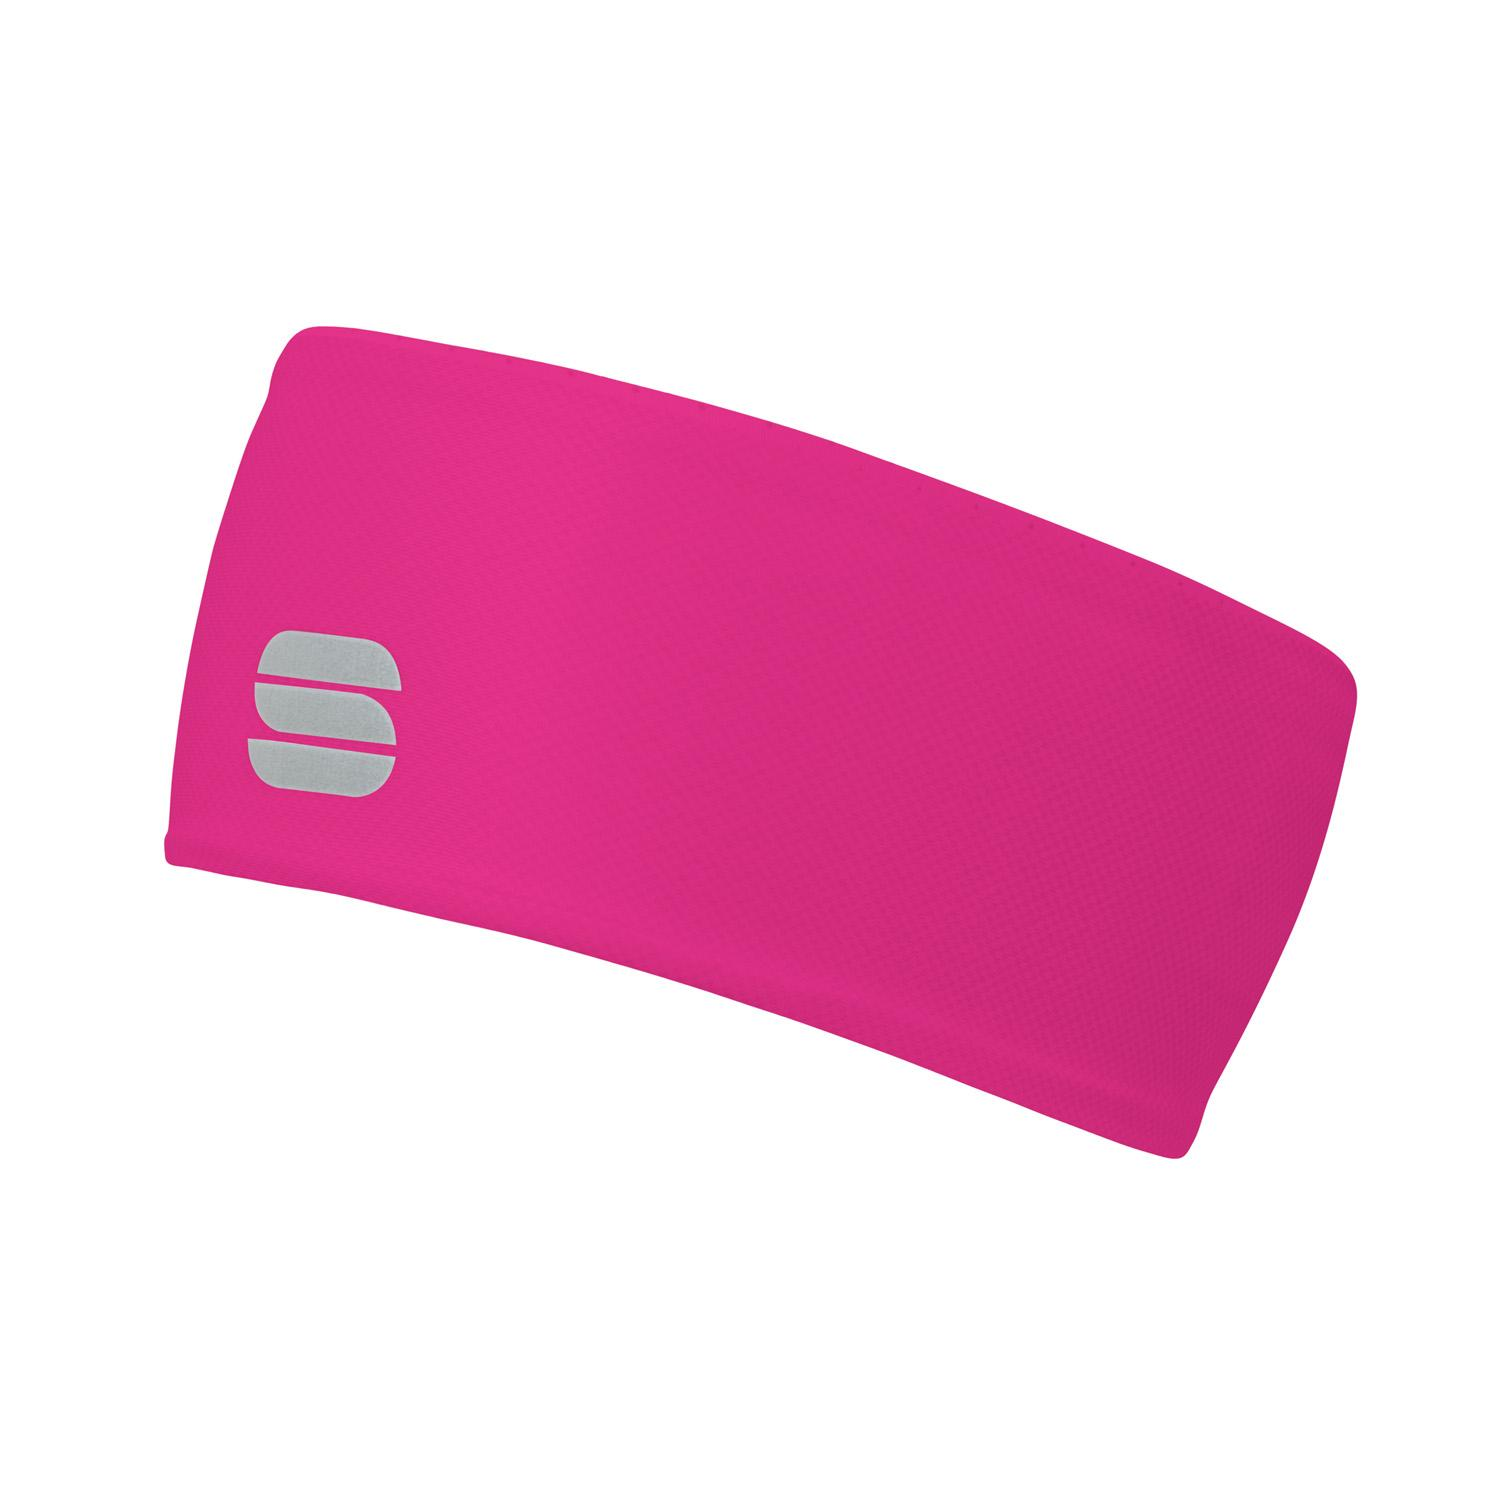 Afbeelding Sportful Haarband Dames Roze - EDGE W BAND BUBBLE GUM